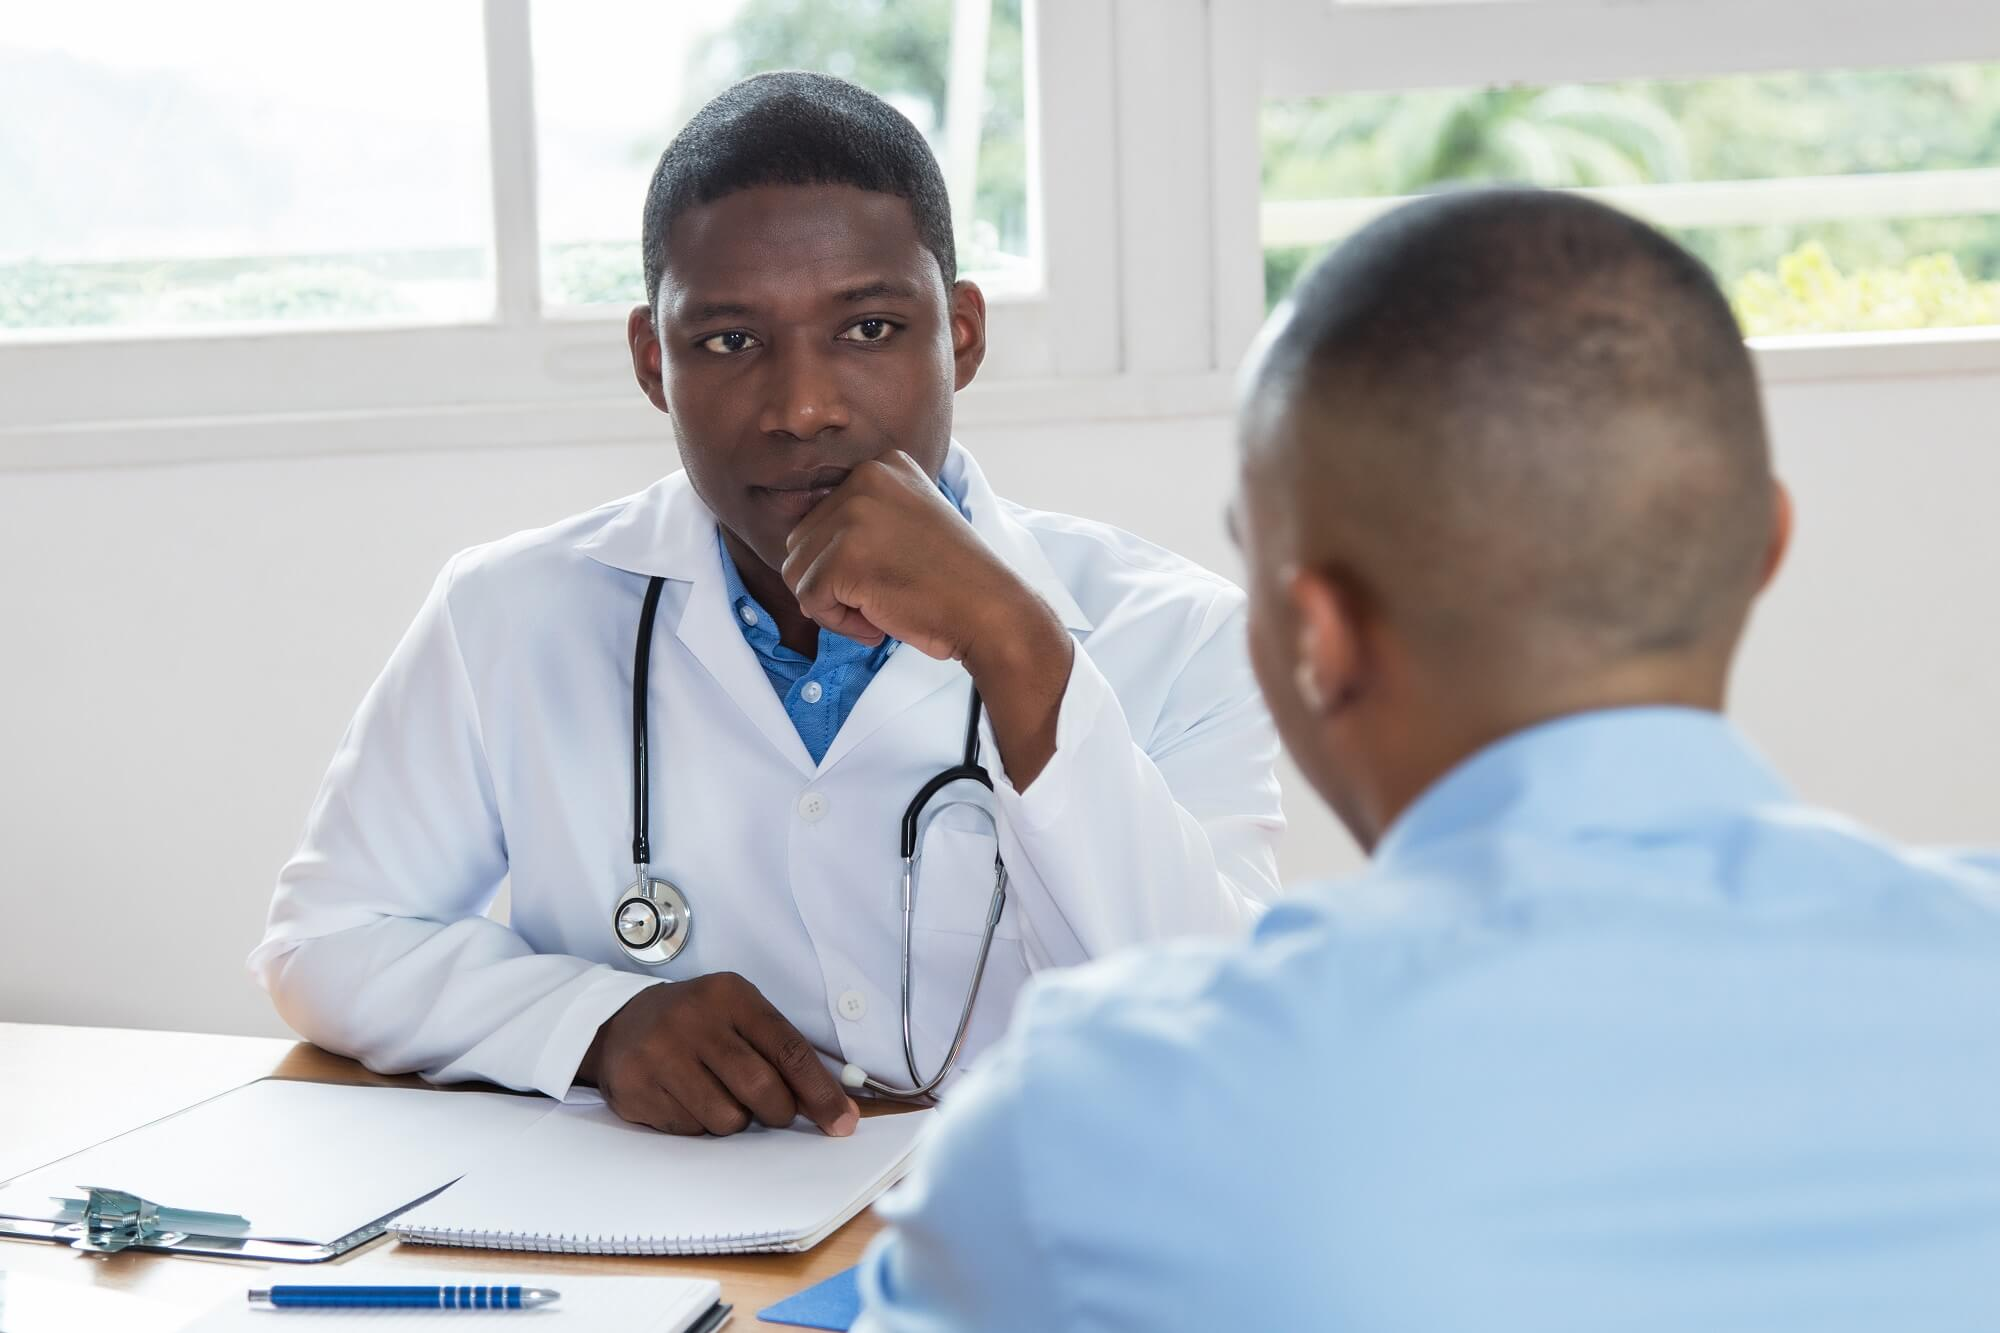 Hiv Aids Pictures Of Patients With Hiv Aids CDC: Most Black...